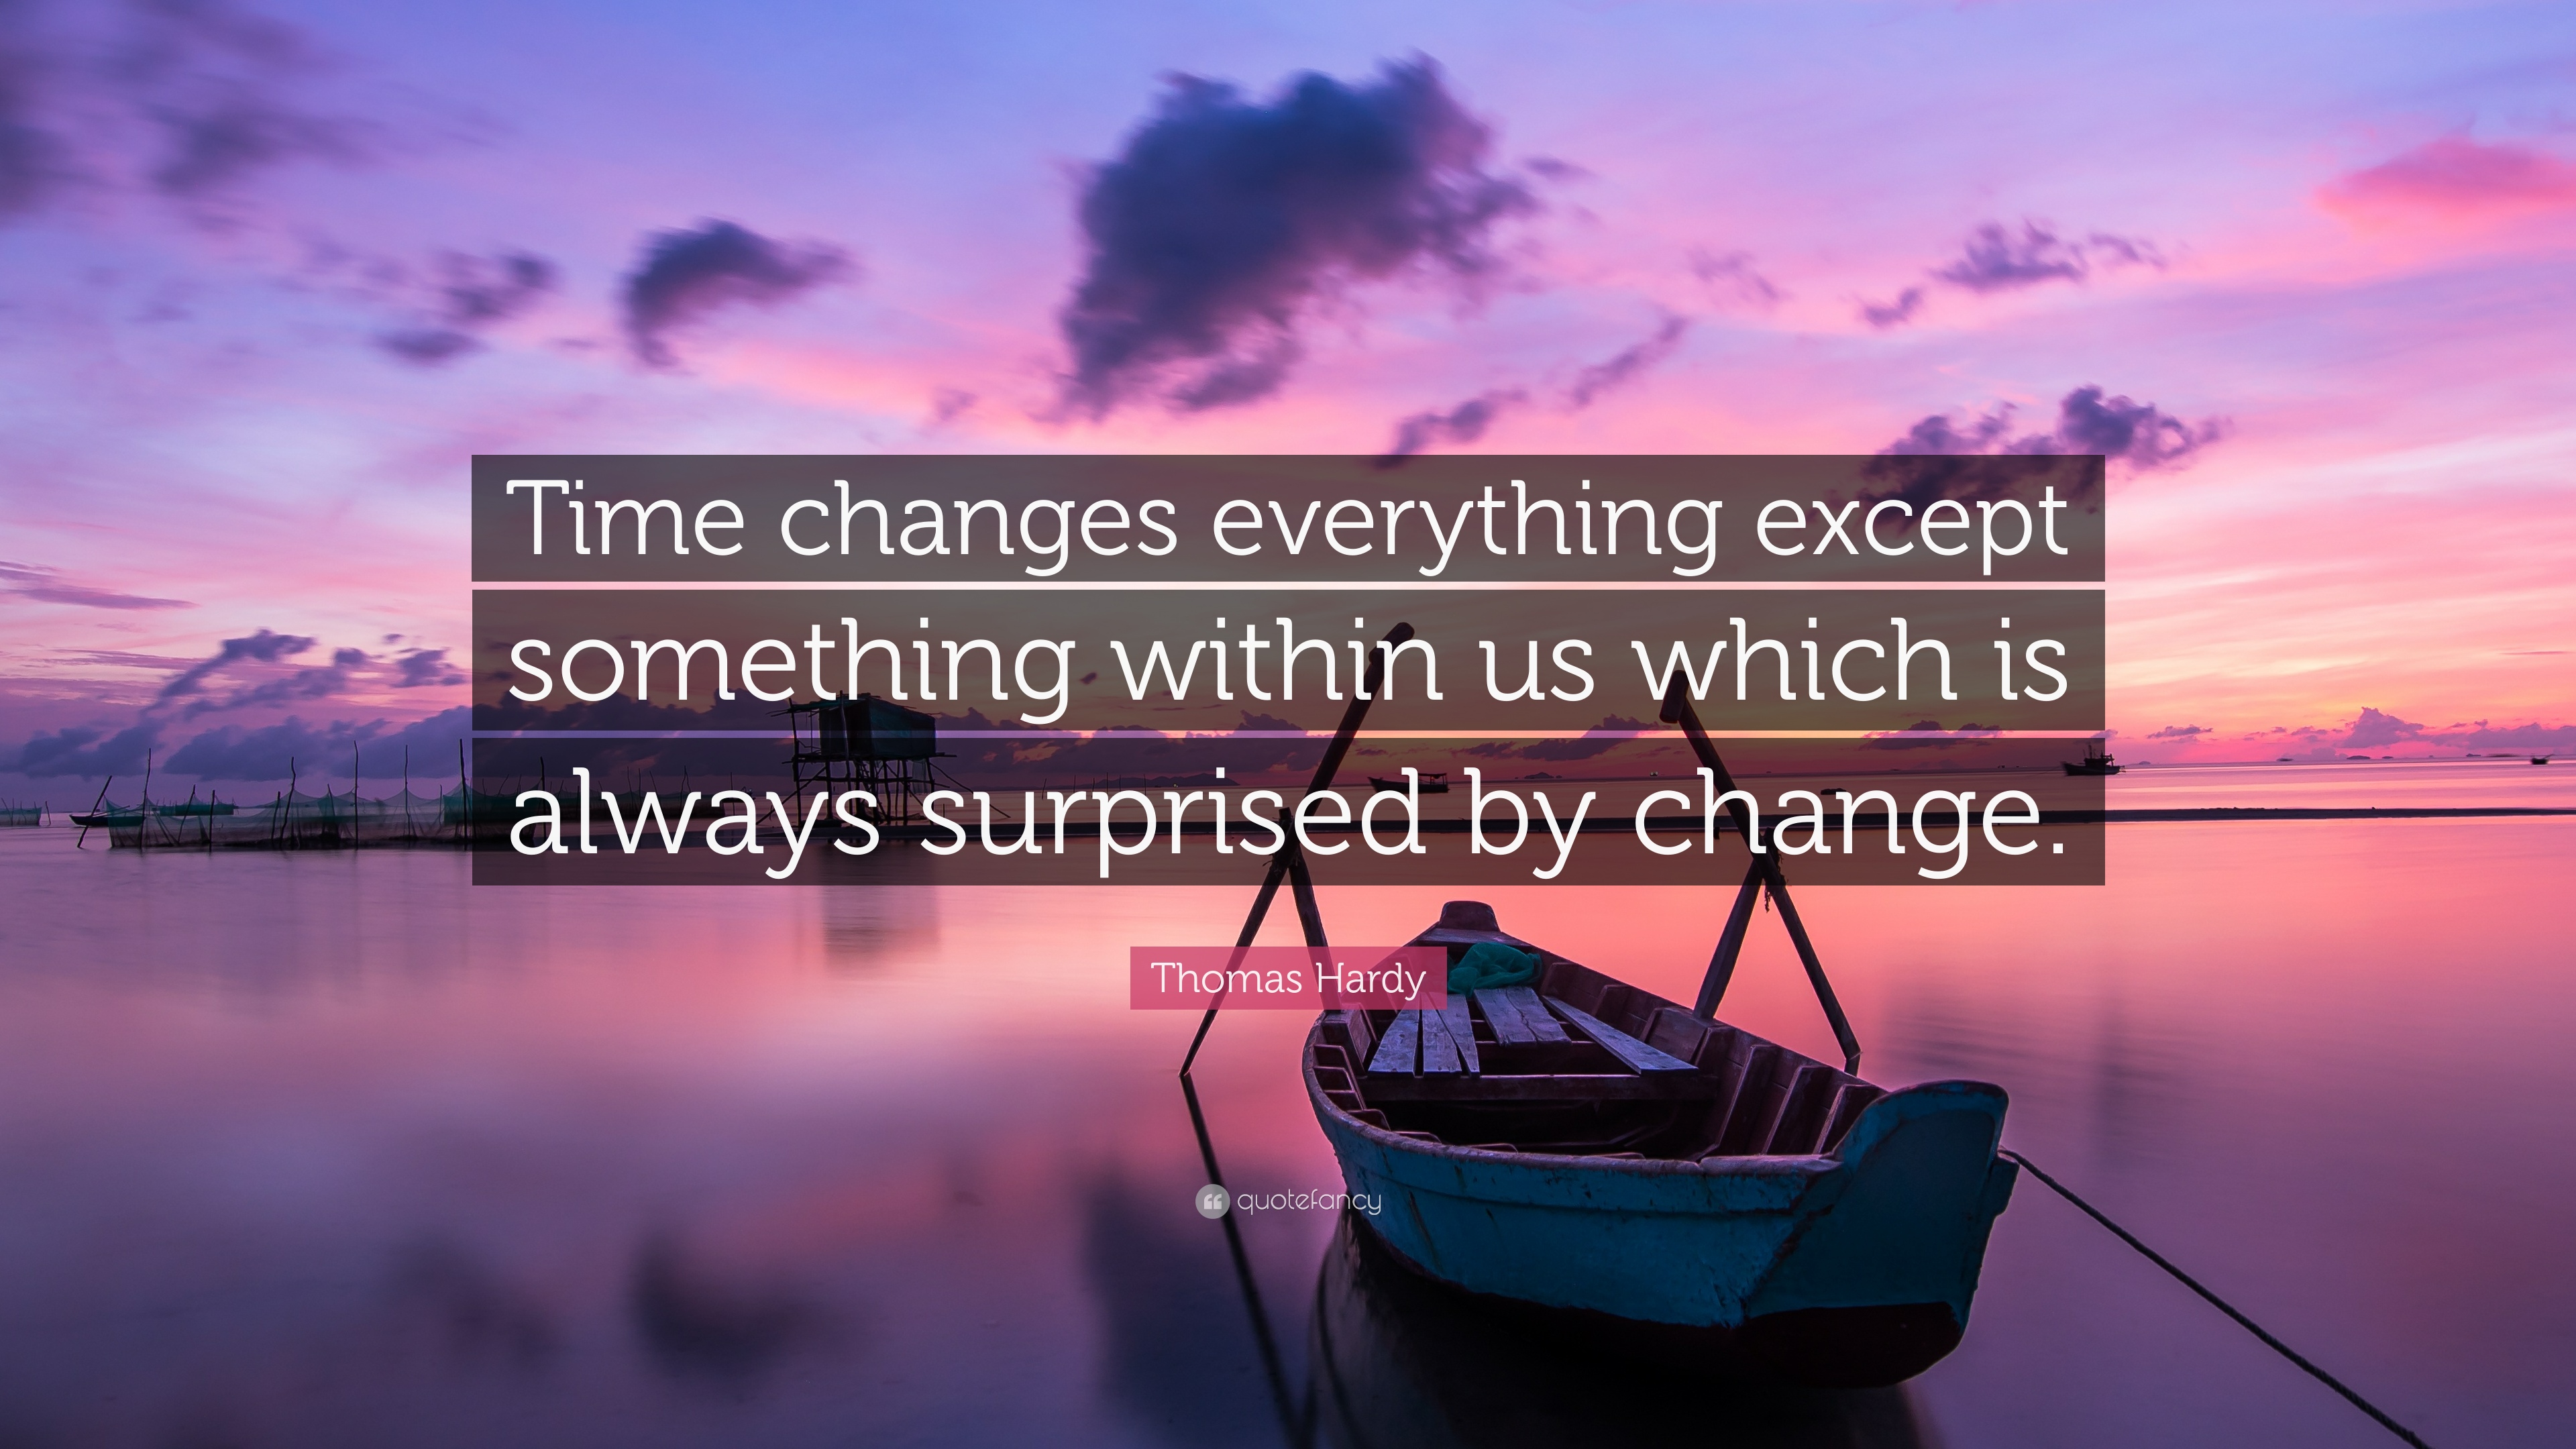 Thomas Hardy Quote Time Changes Everything Except Something - Time changes in us